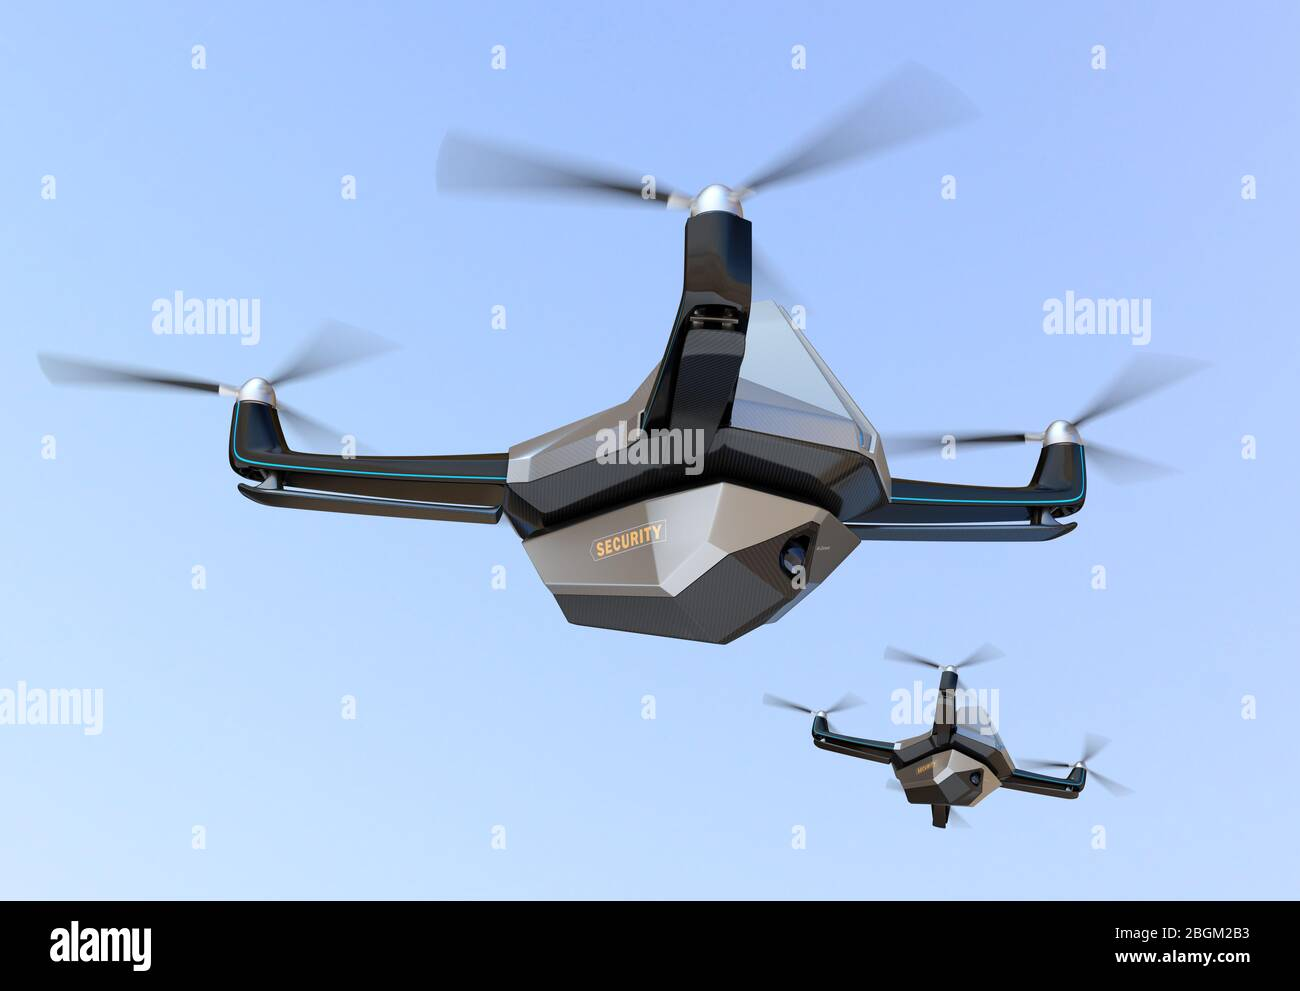 Electric Security Drones flying in the sky. 3D rendering image. Stock Photo